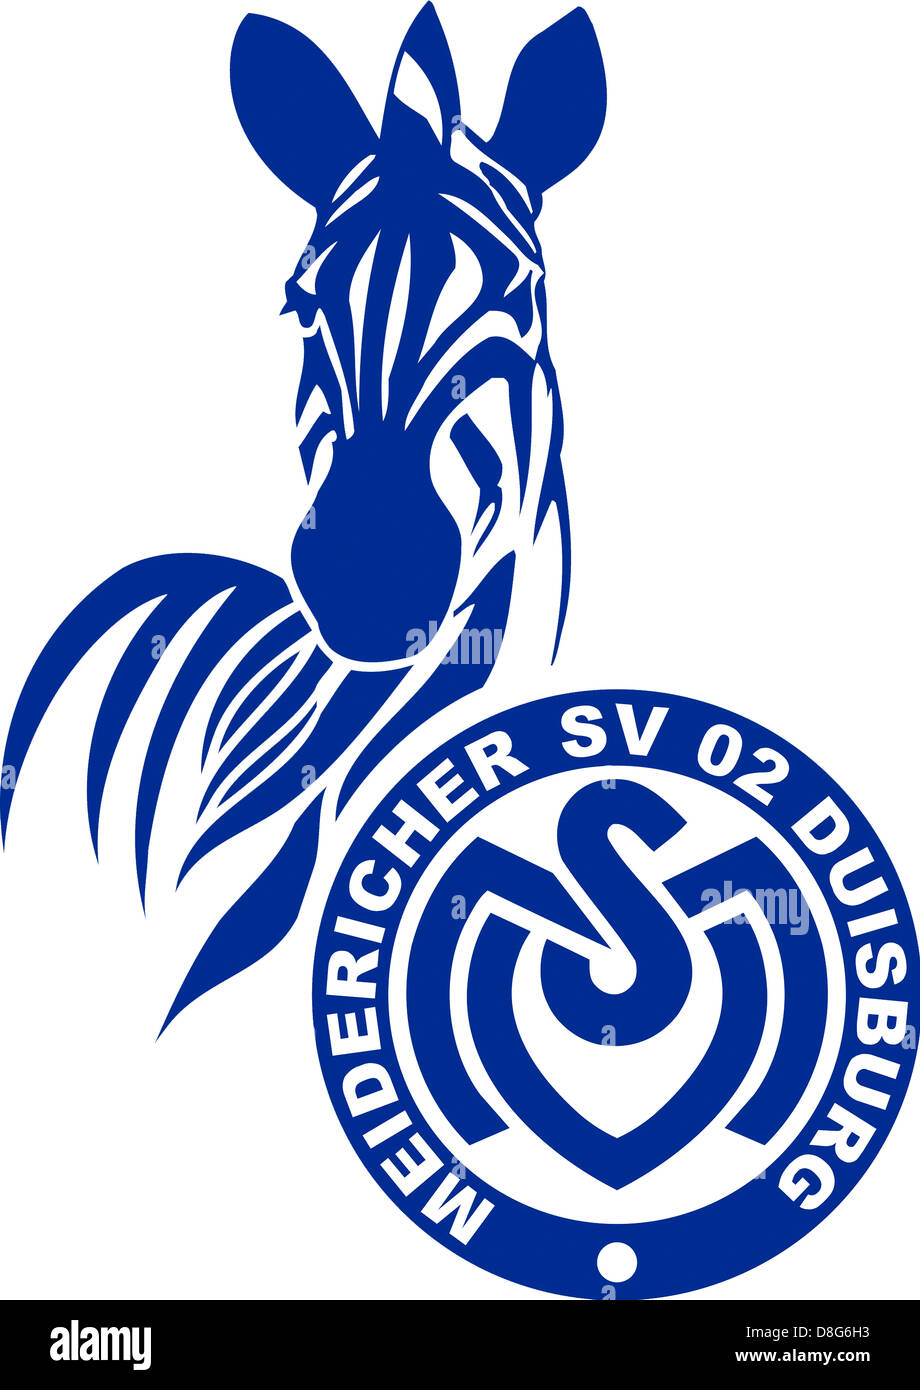 Logo of German football team MSV Duisburg. - Stock Image